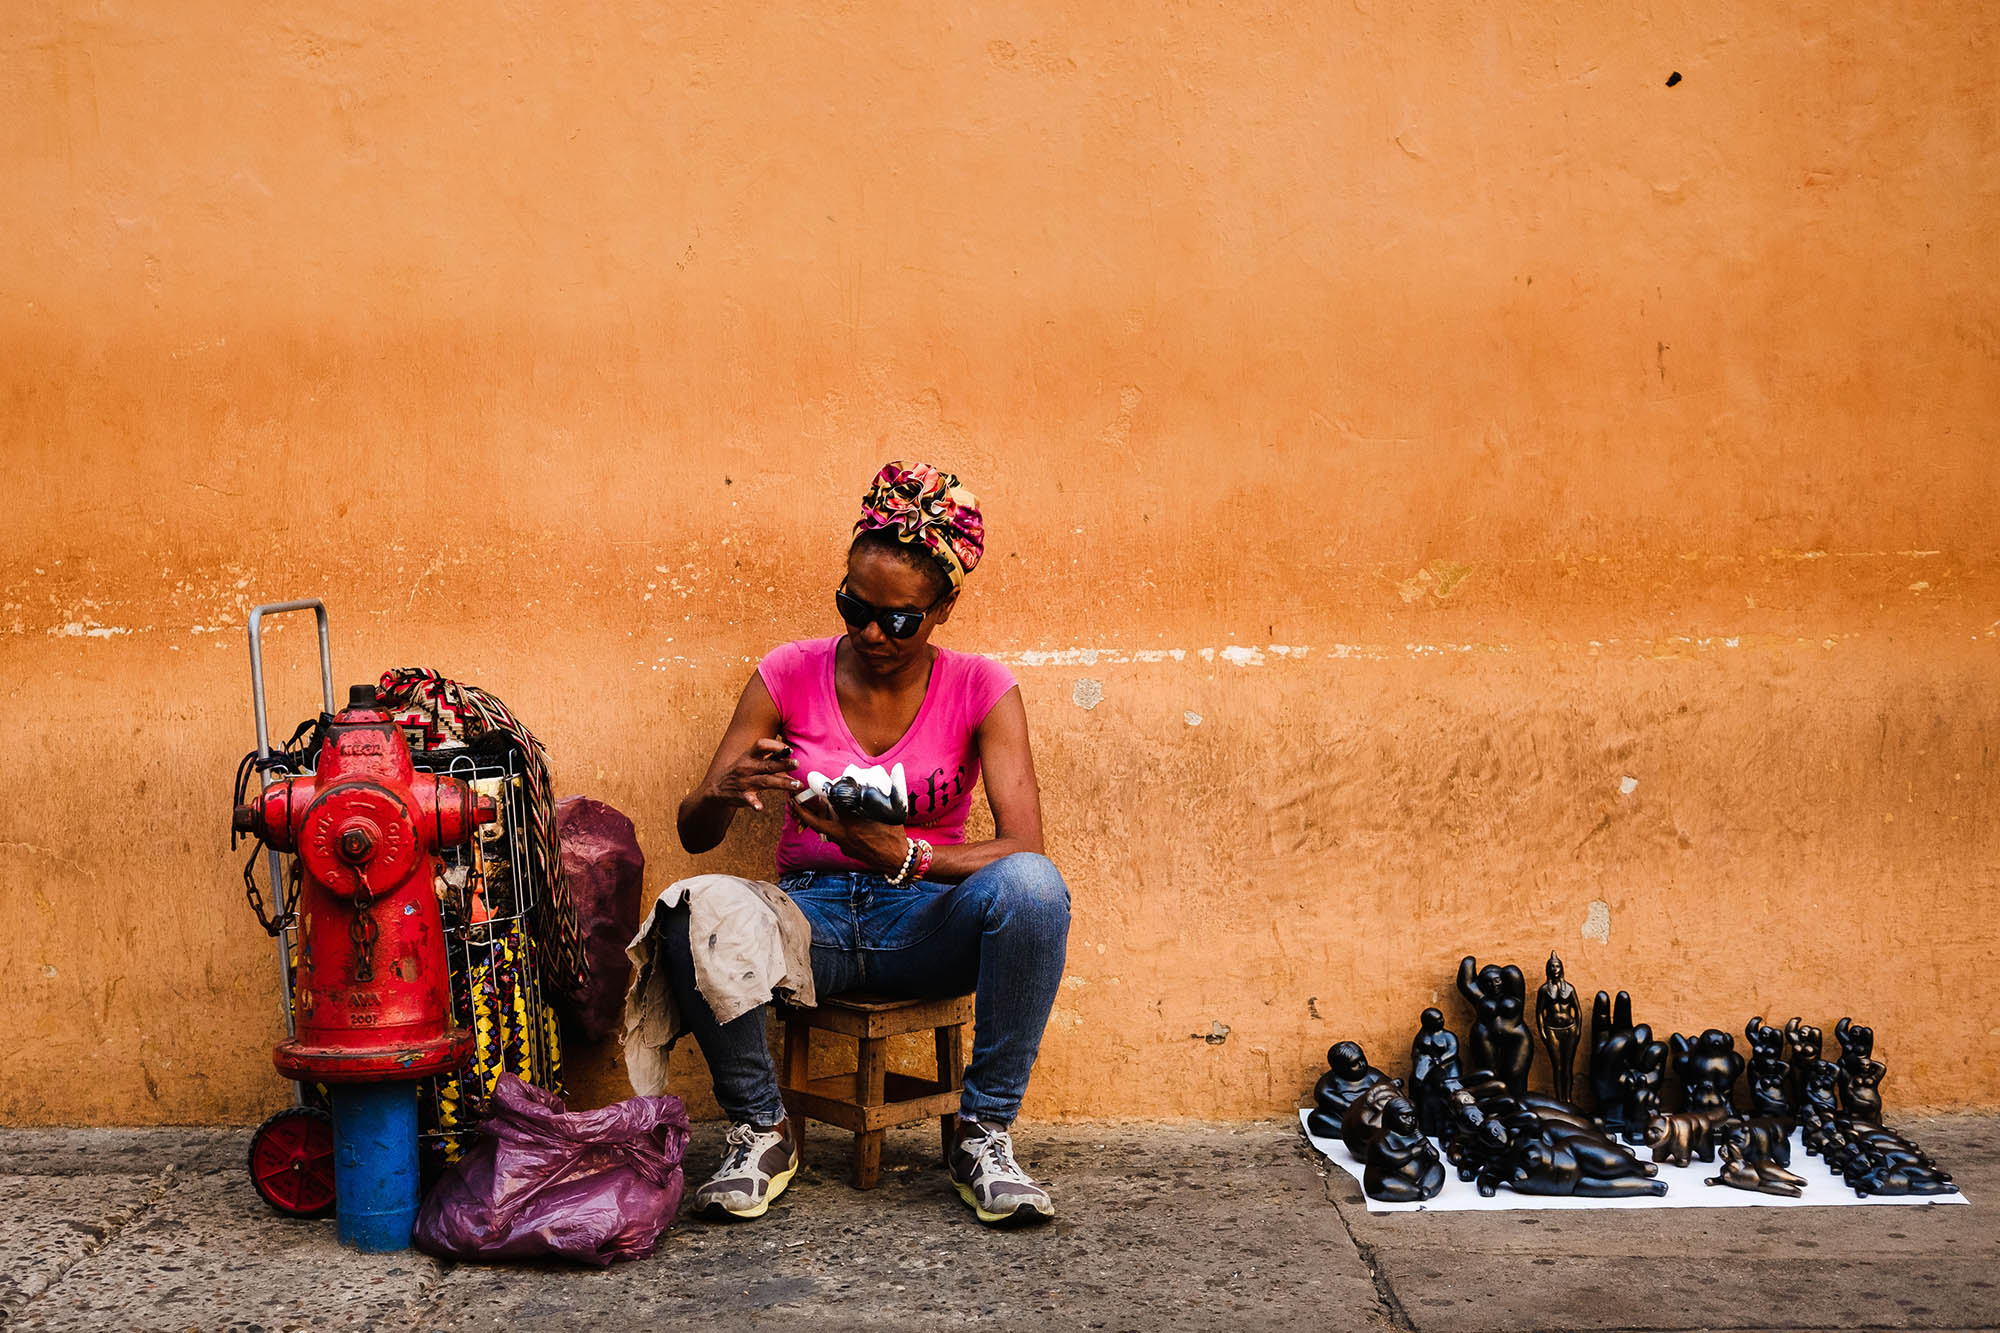 Street photography in Colombia